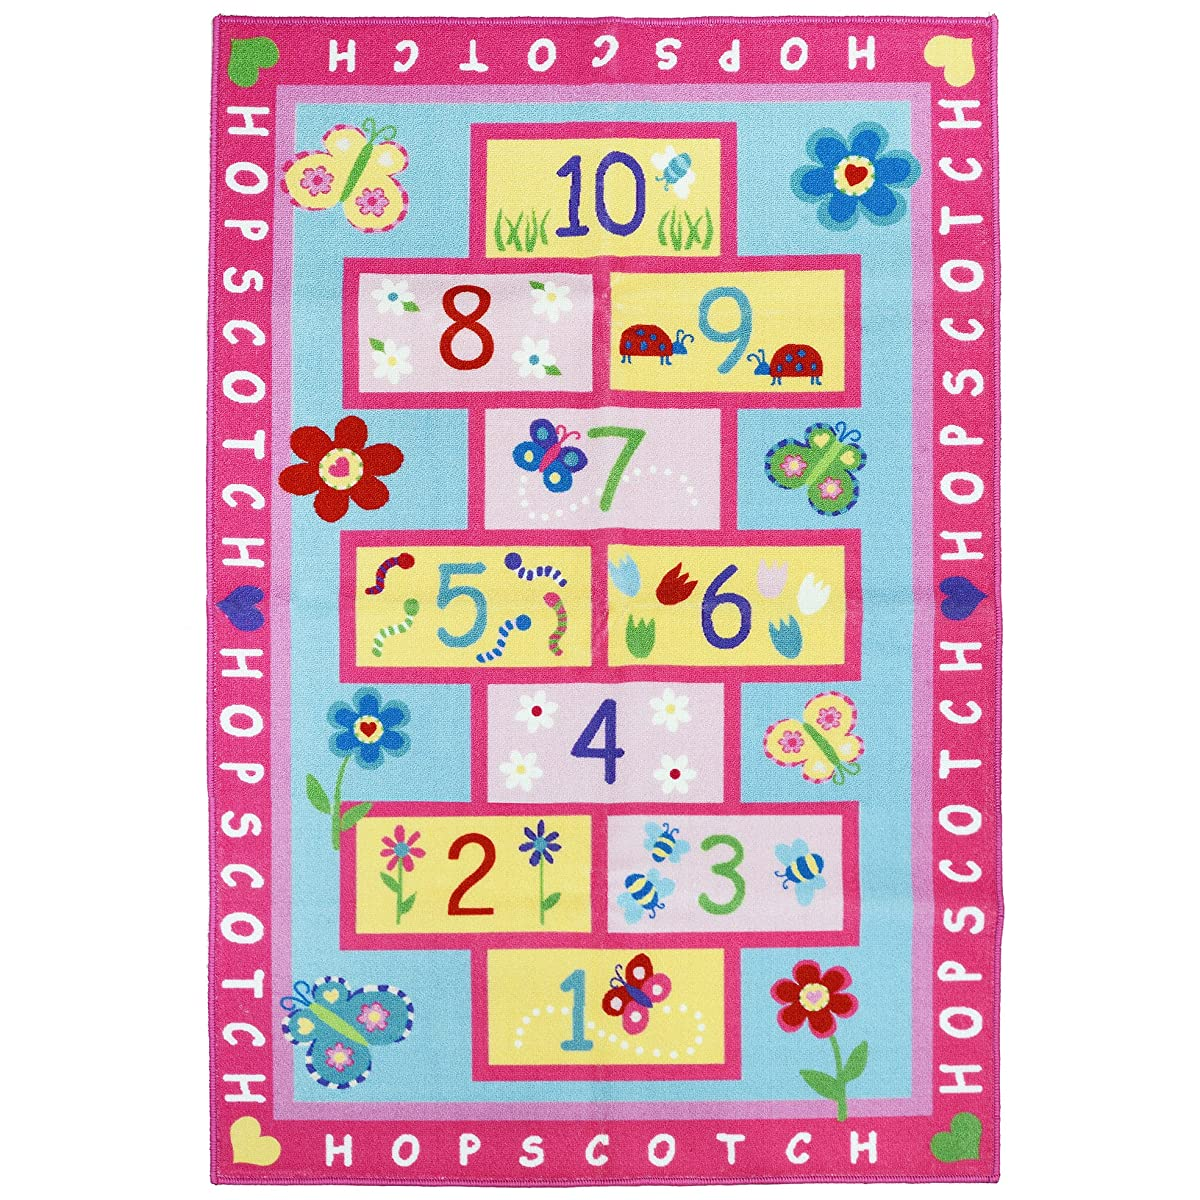 FADFAY Home Textile,Fashion Hopscotch Kids Carpet Bedroom,Sweet Pink Rug,Designer Figure Childrens Rugs